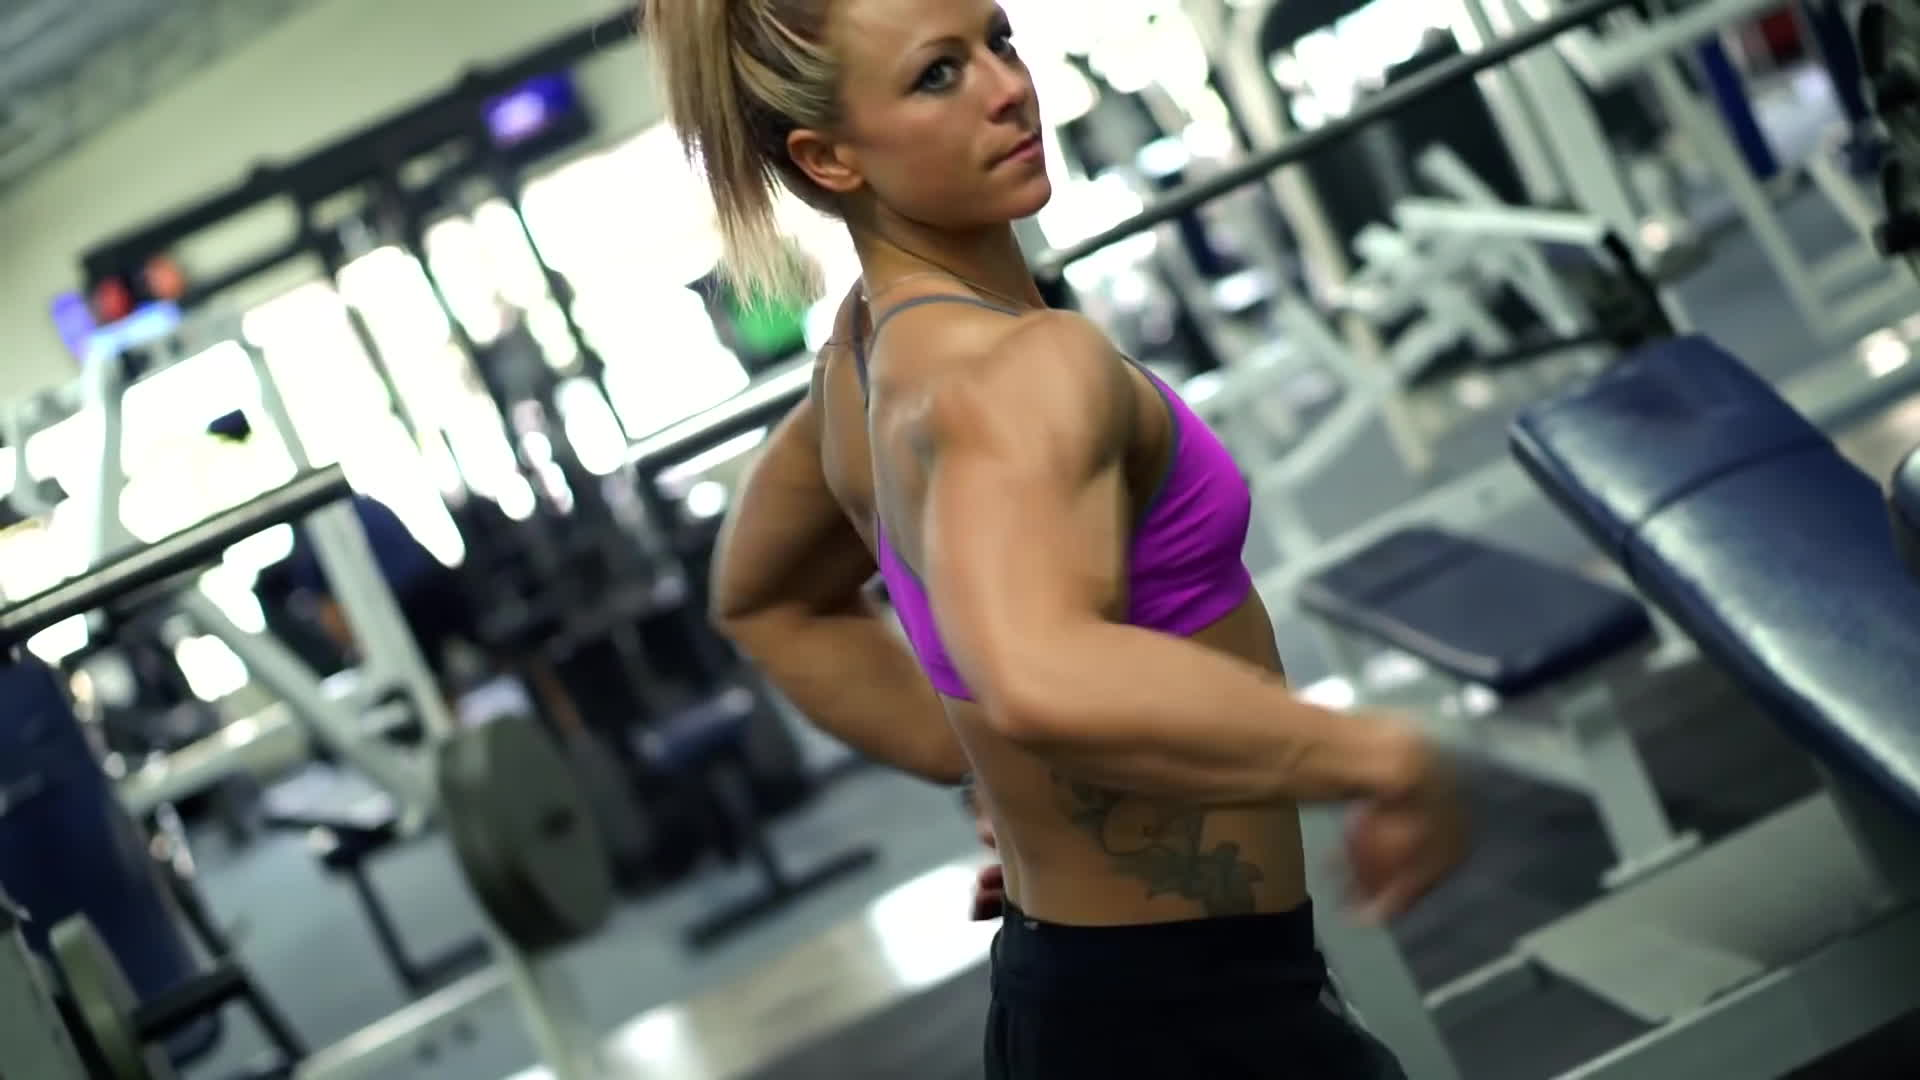 dani reardon, danielle reardon, fitandnatural, Dani Reardon - Days In The Universe - Chest Training at Beach Bodies GIFs